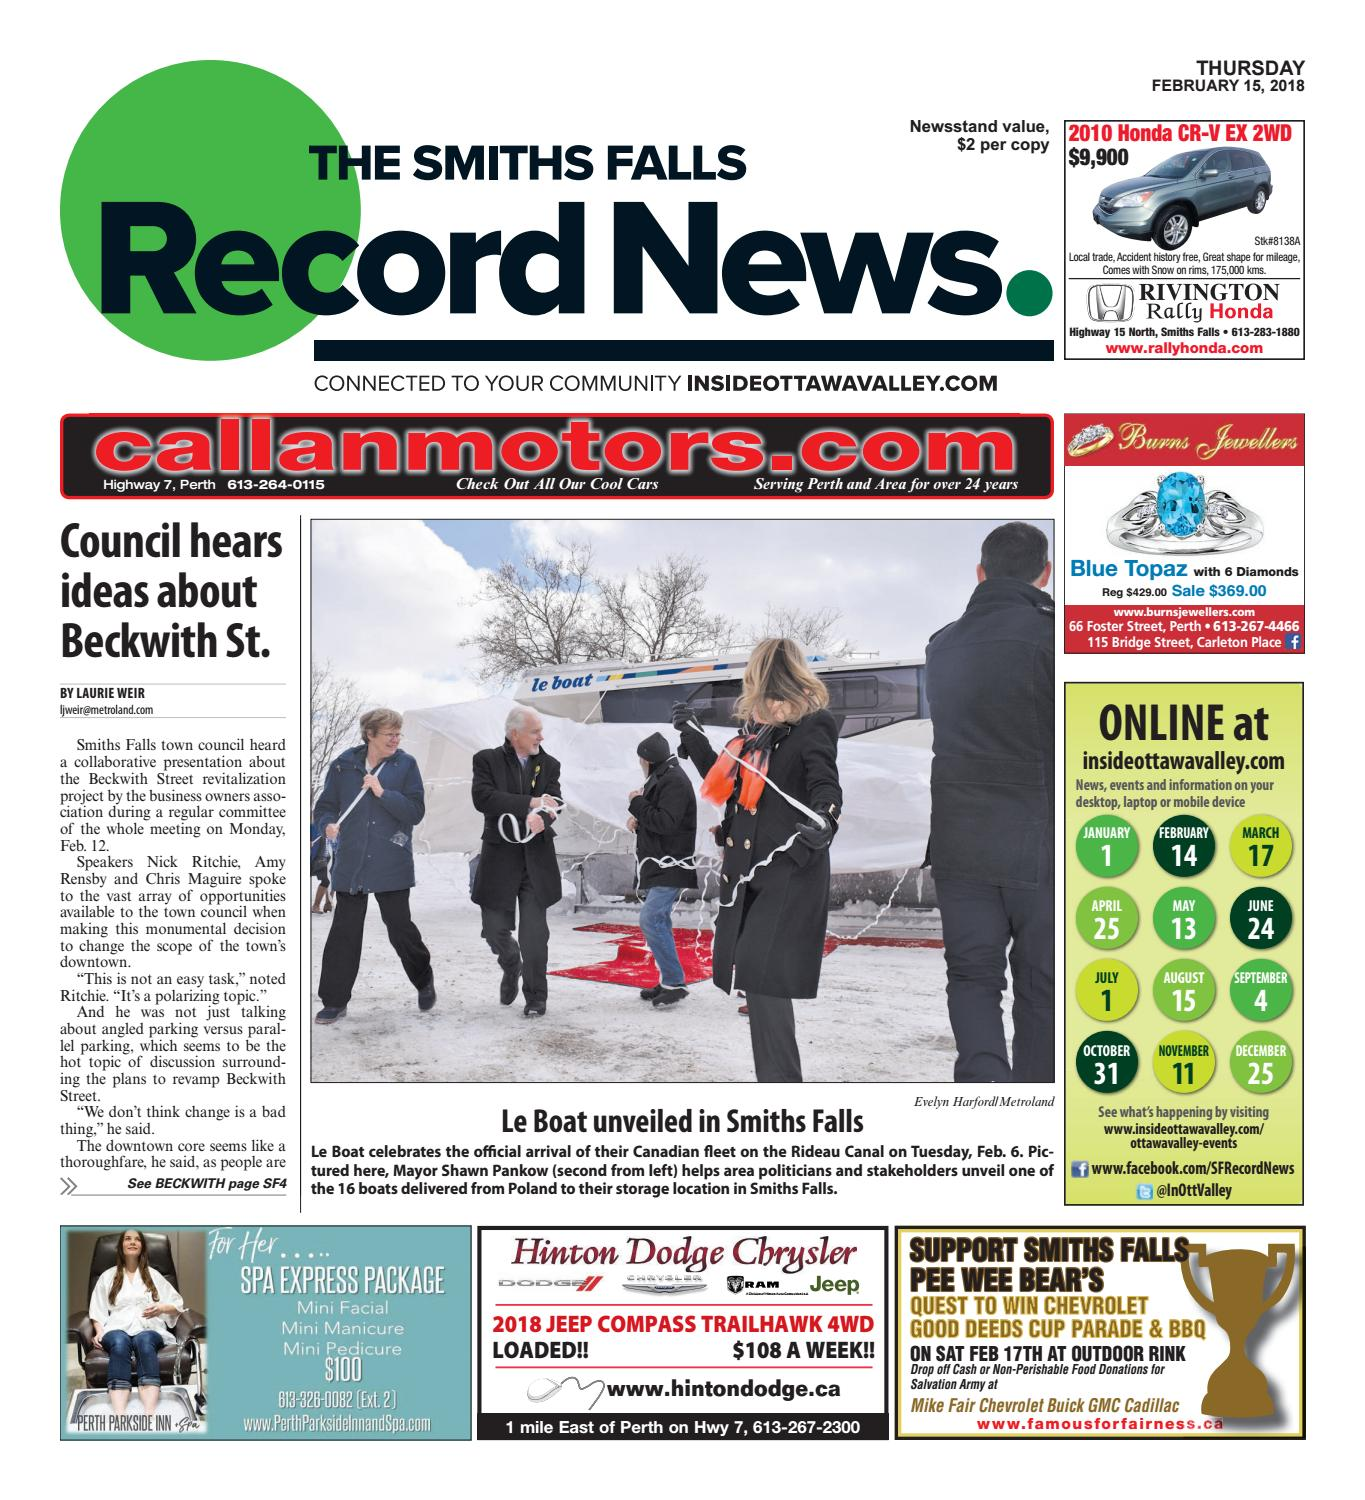 Smithsfalls021518 by metroland east smiths falls record news issuu fandeluxe Images